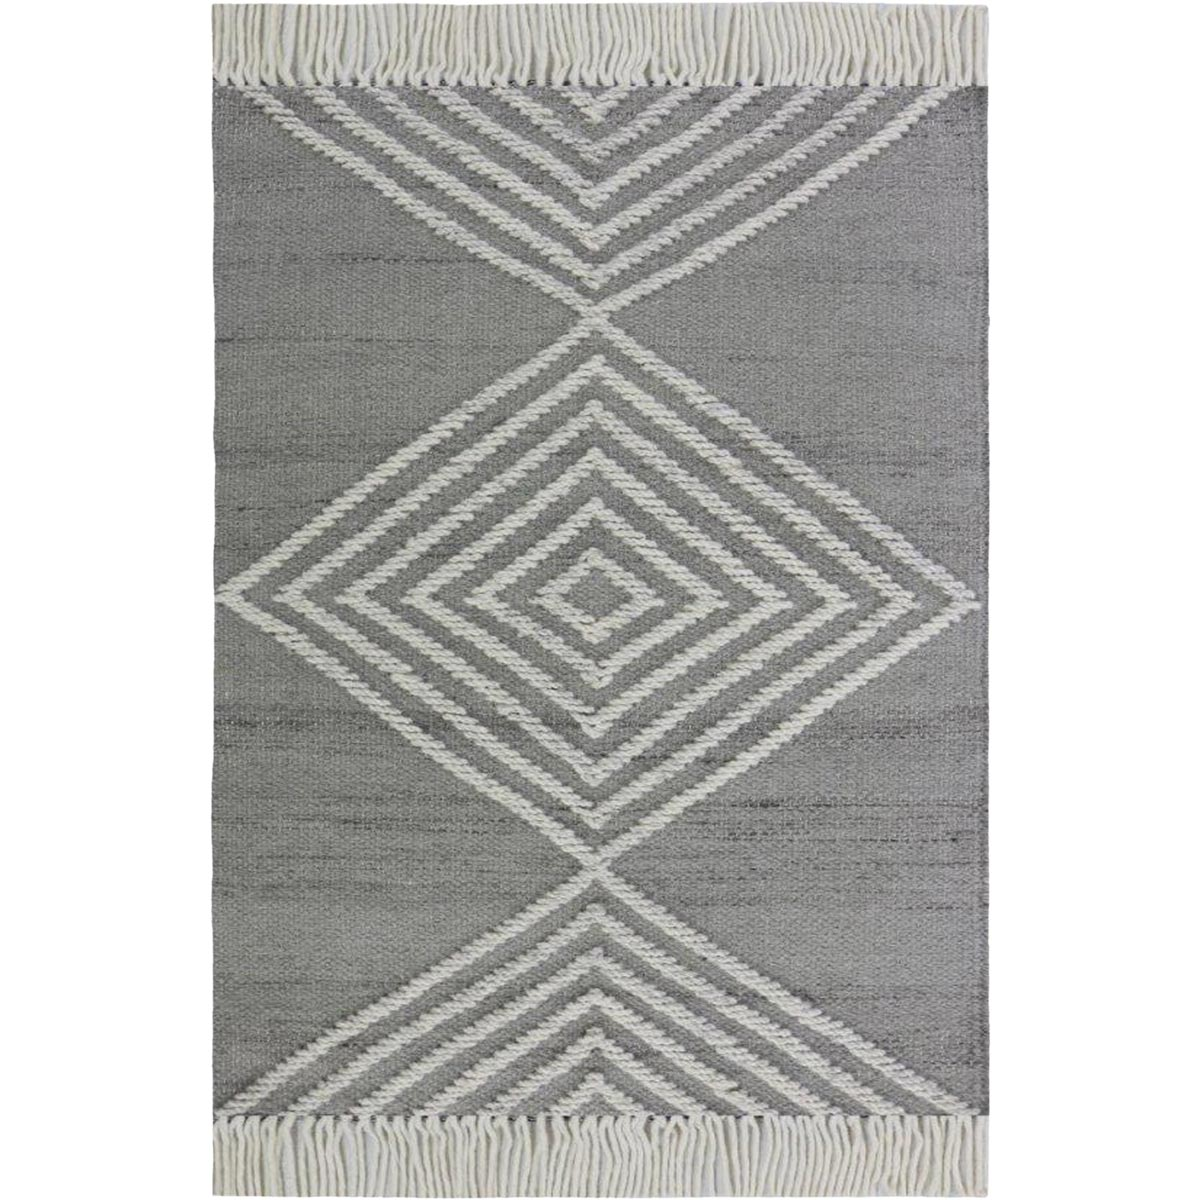 Tangier Rug 16 Grey/White 1